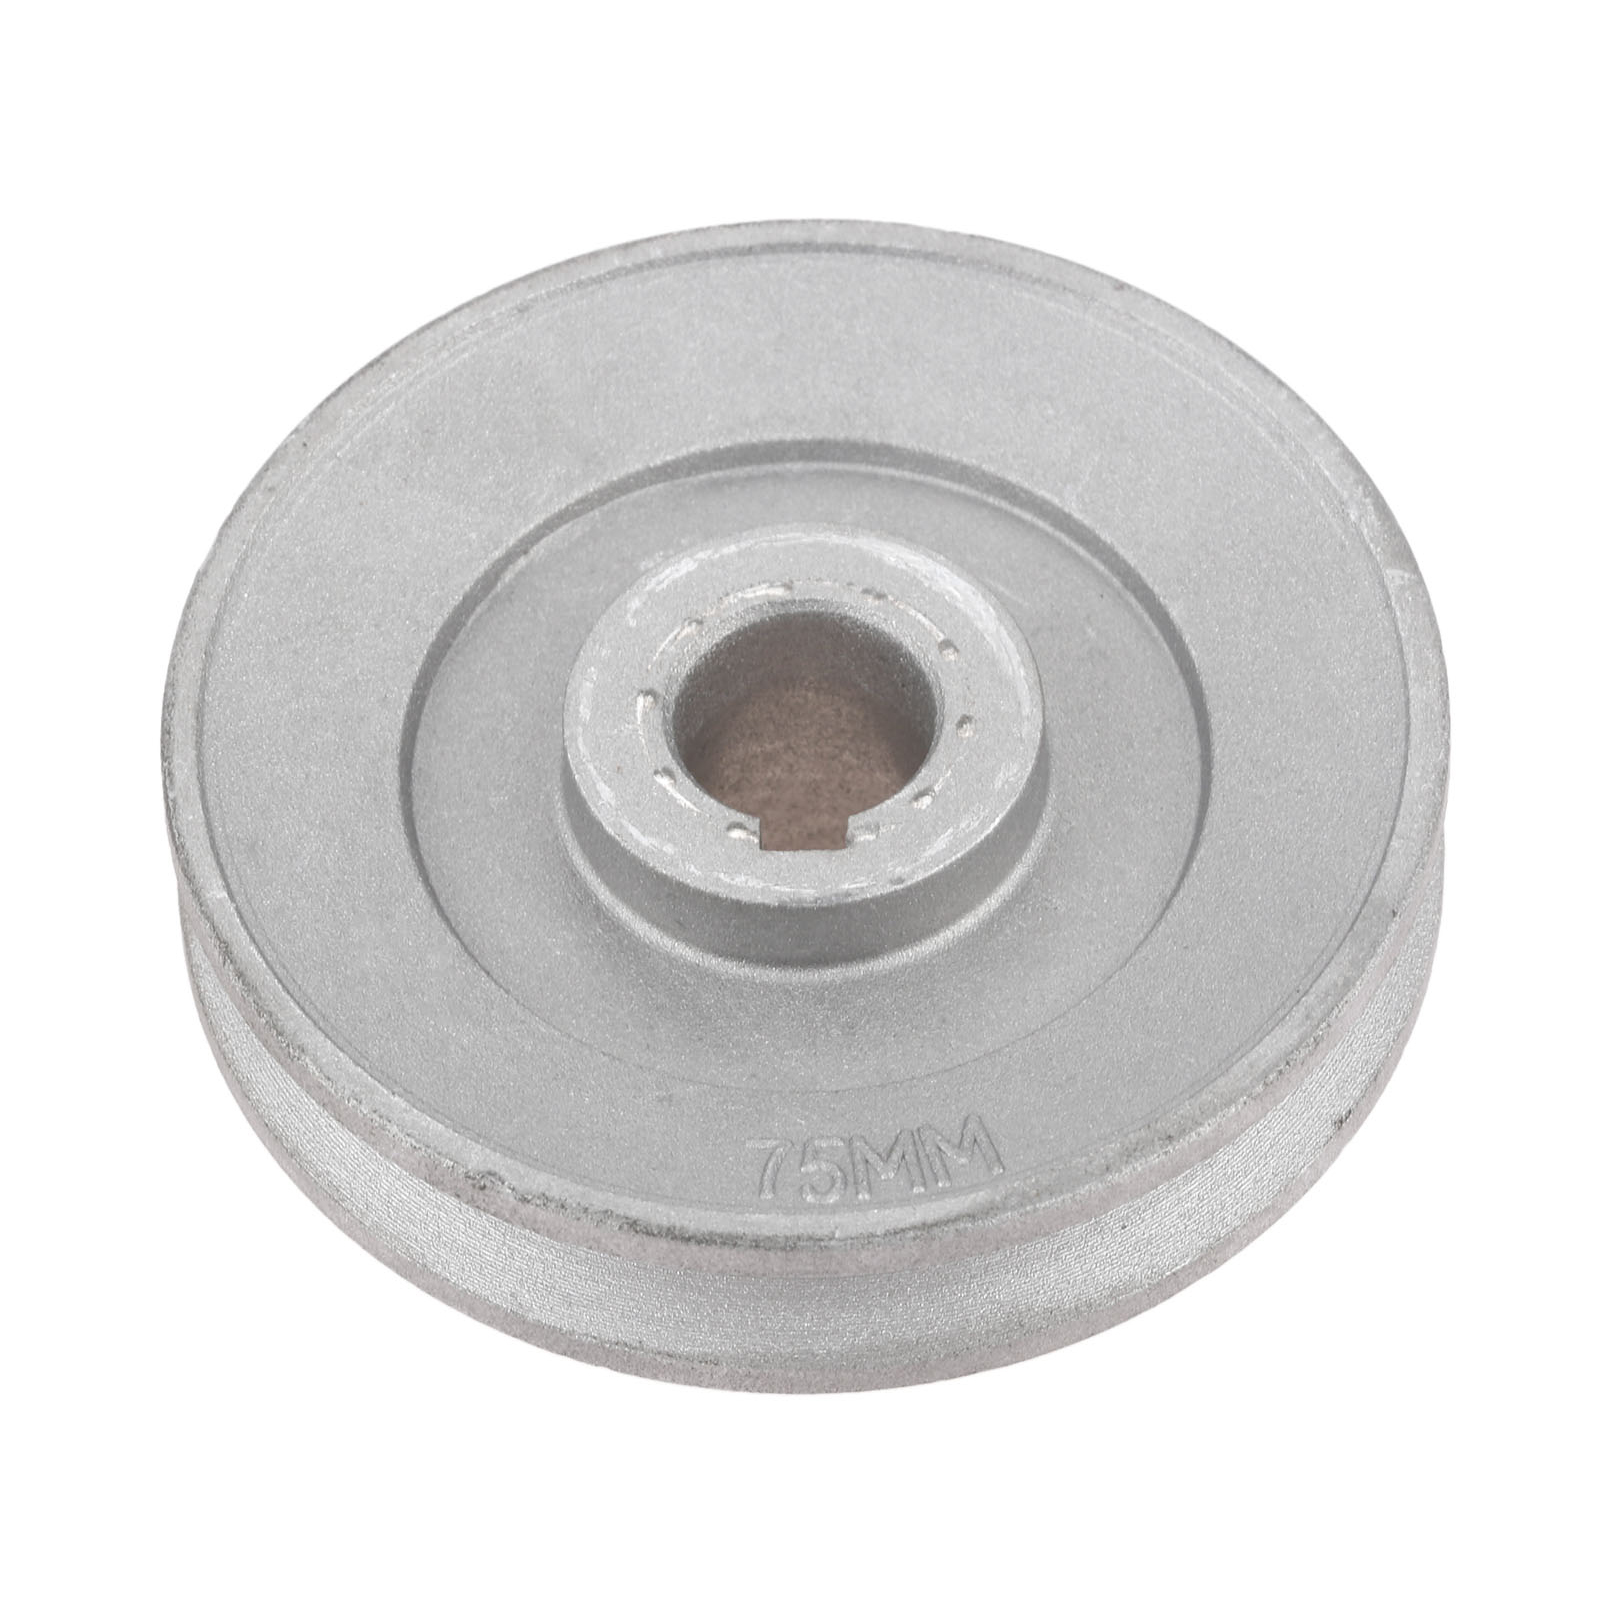 Industrial Sewing Machine Pulley Motor Clutch Slow Speed Reducing Accessories